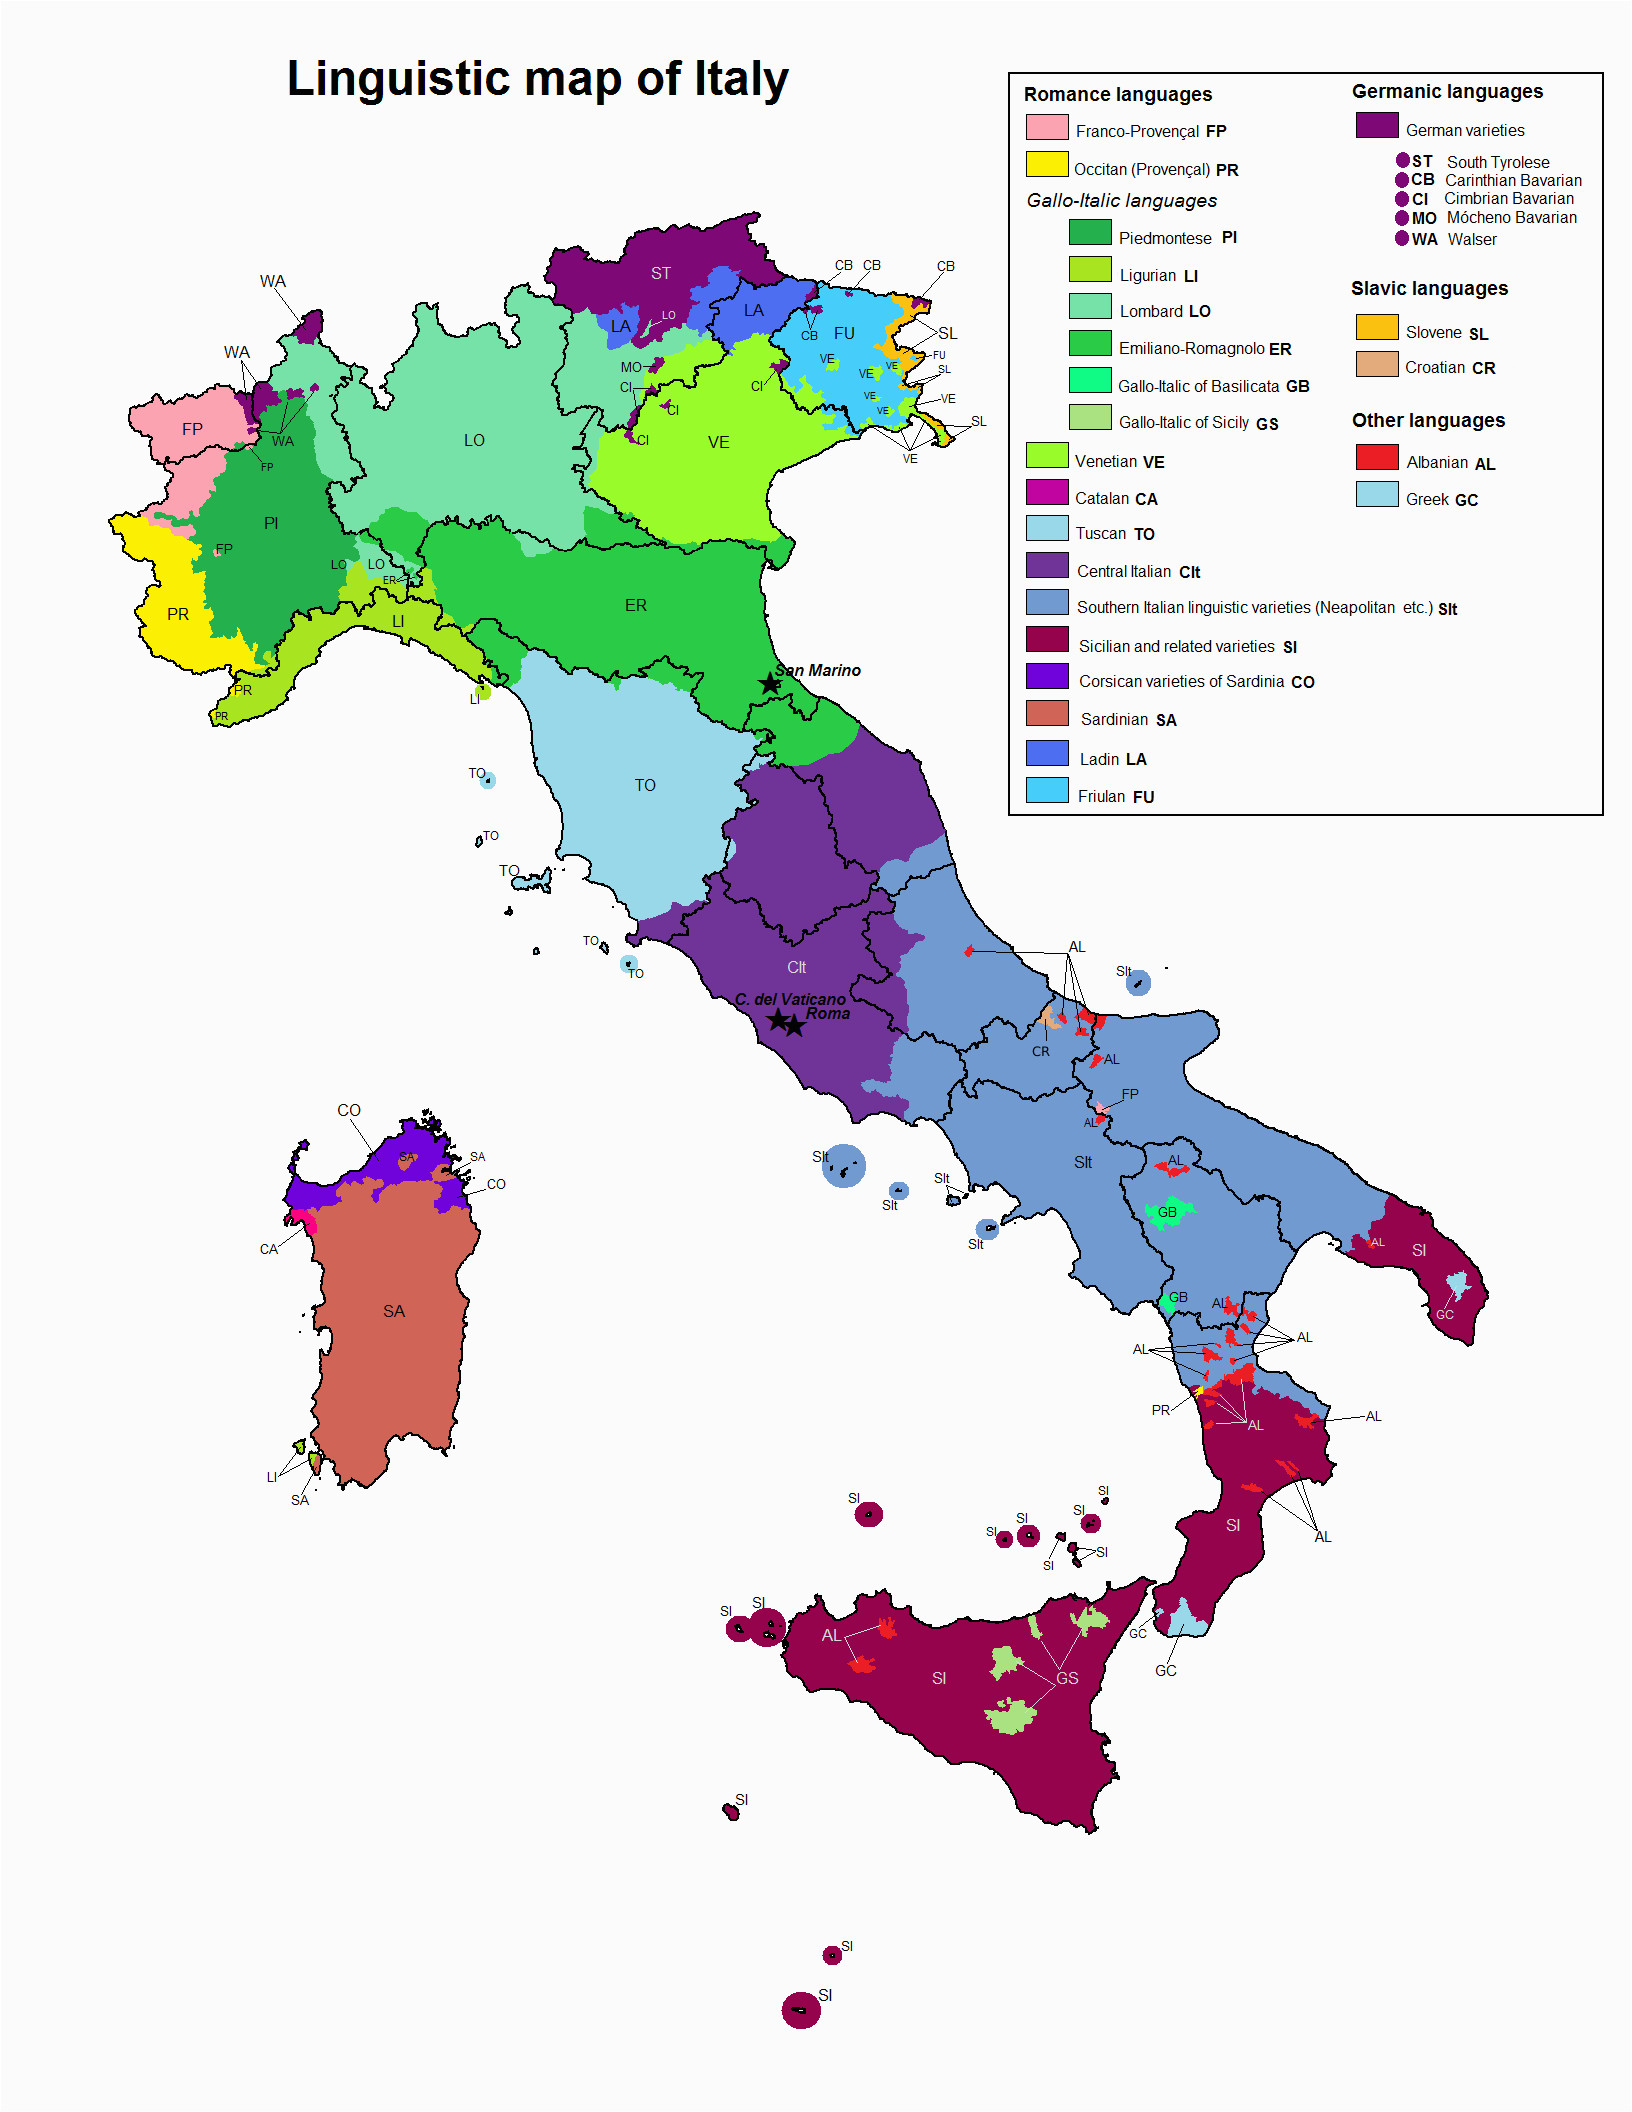 Map Of Italy Regions And Capitals.Map Of Italy With Regions And Capitals Linguistic Map Of Italy Maps